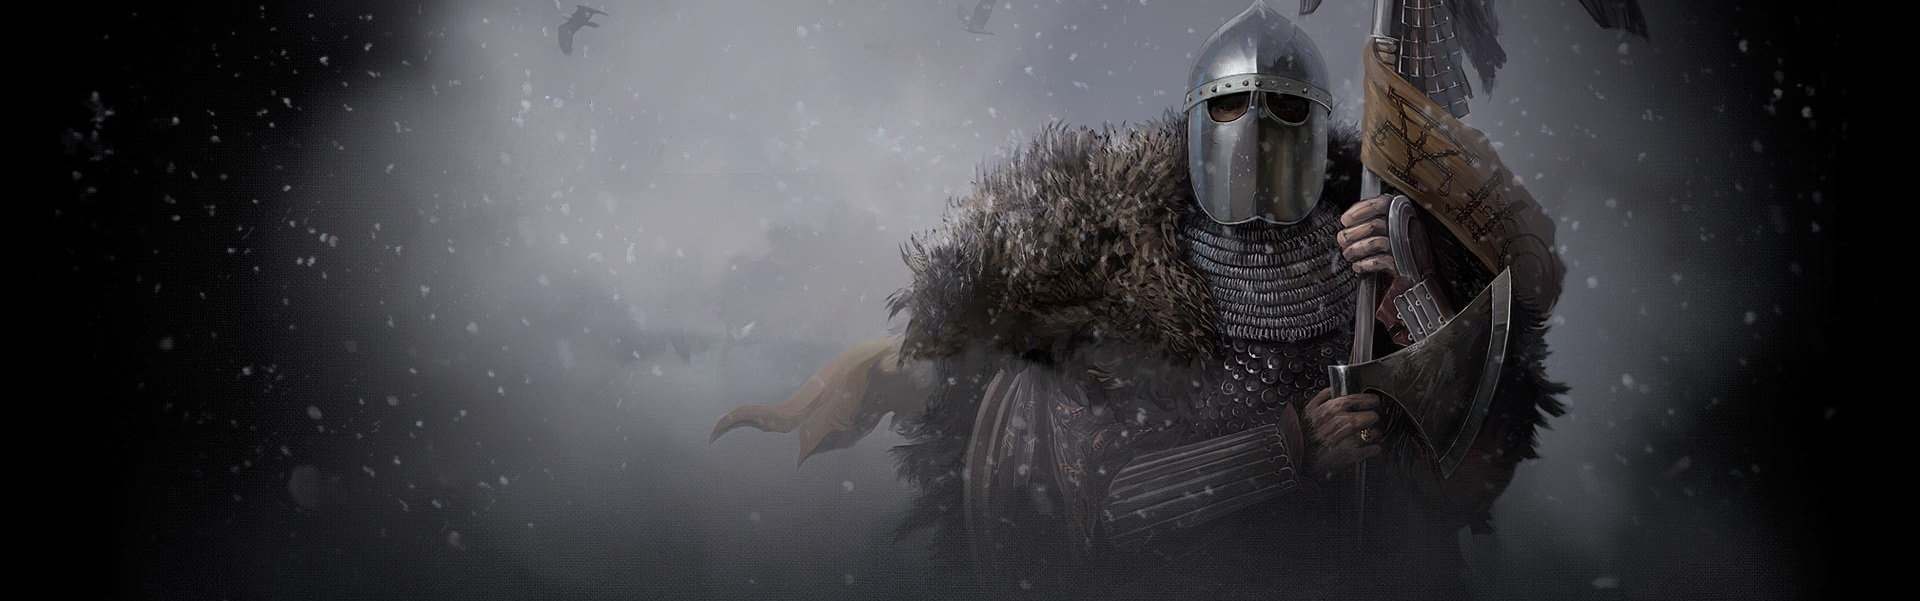 Mount & Blade Colección Completa Steam Key GLOBAL